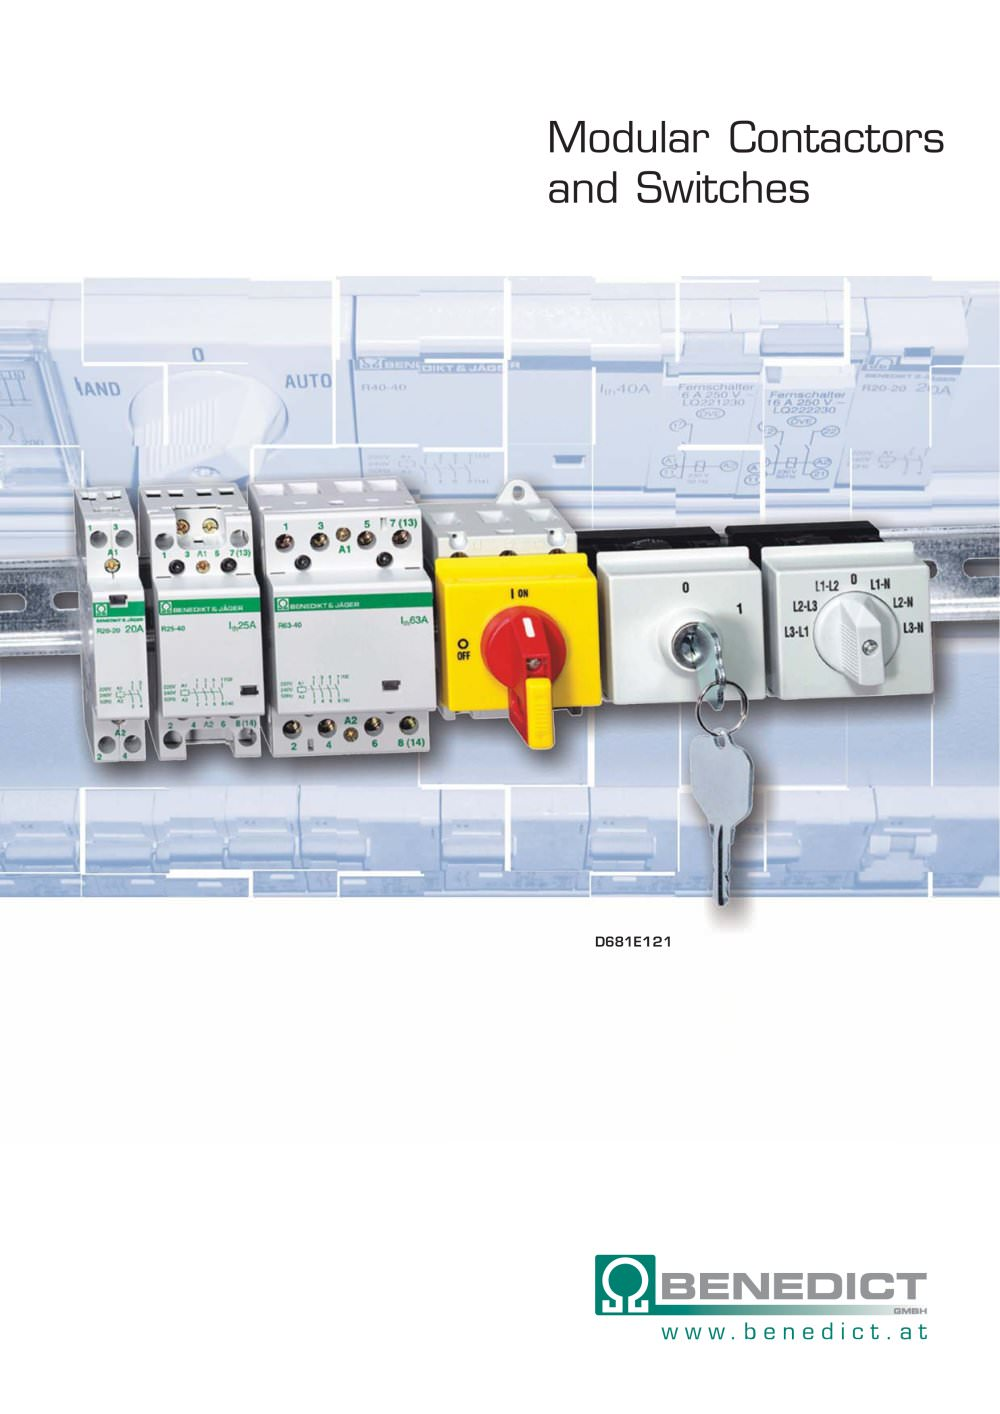 Modular contactors and switches benedikt jger pdf catalogue modular contactors and switches 1 13 pages asfbconference2016 Choice Image